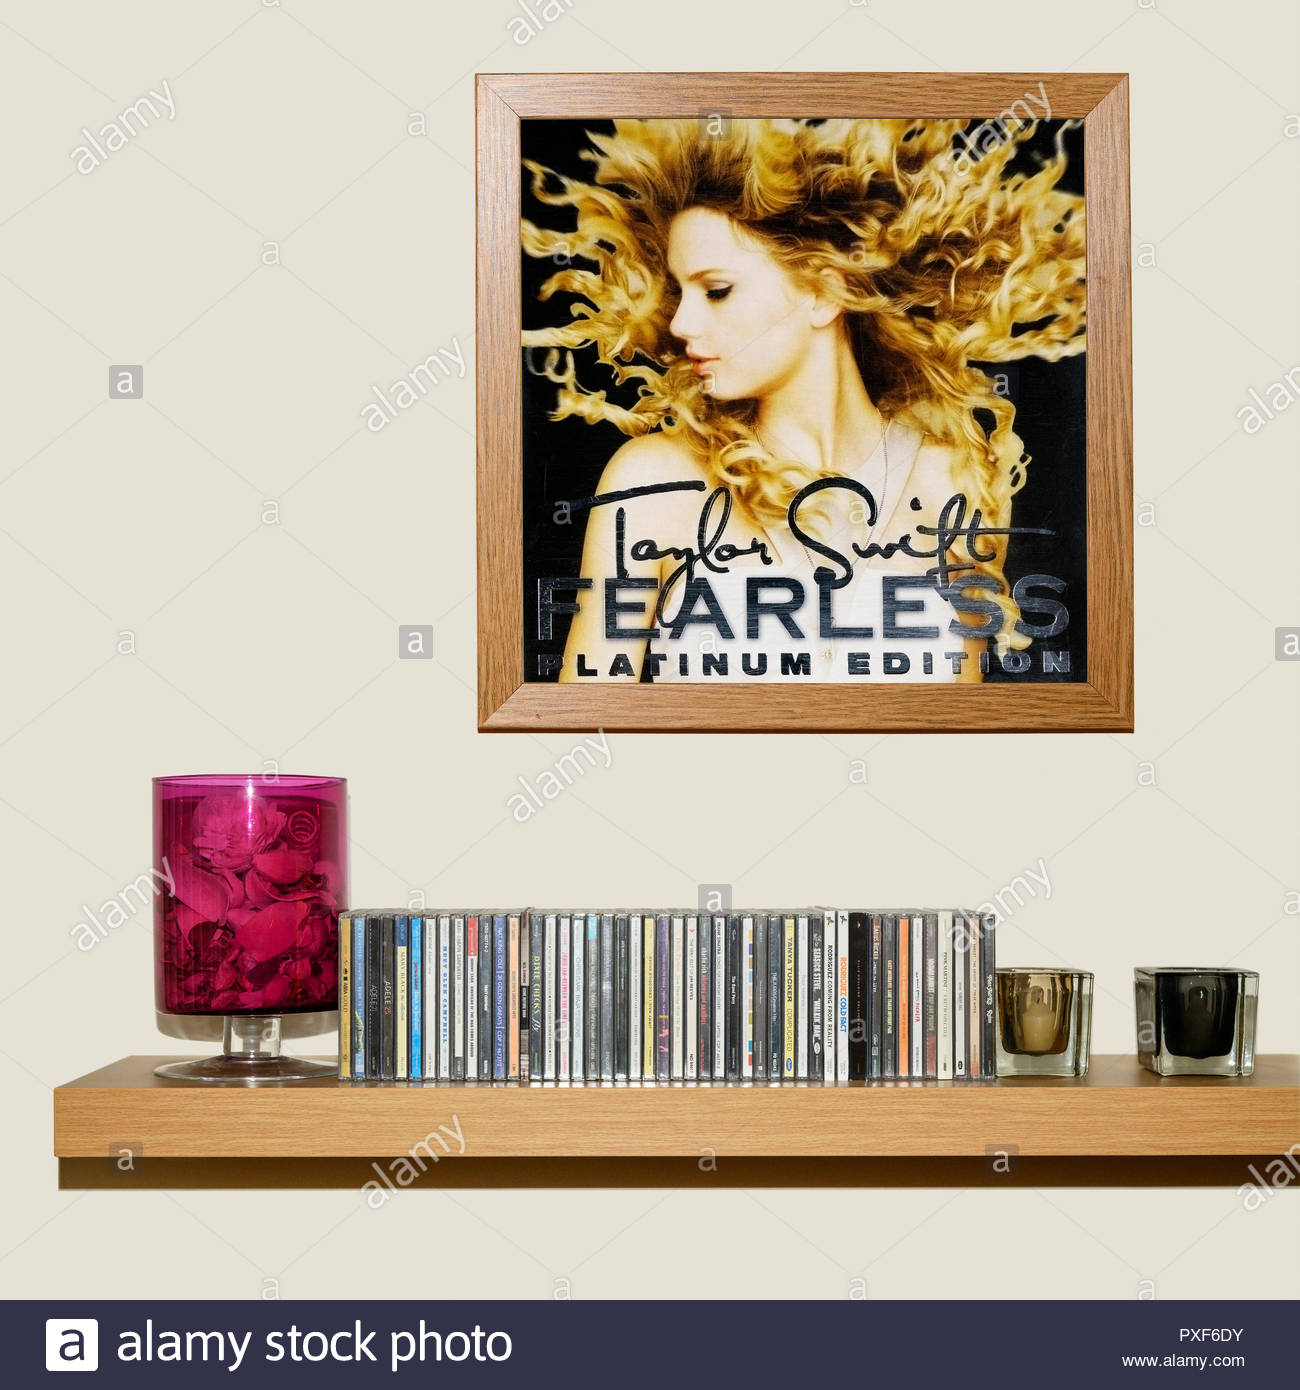 CD Collection and framed Taylor Swift, 2008 2nd album Fearless, England - Stock Image